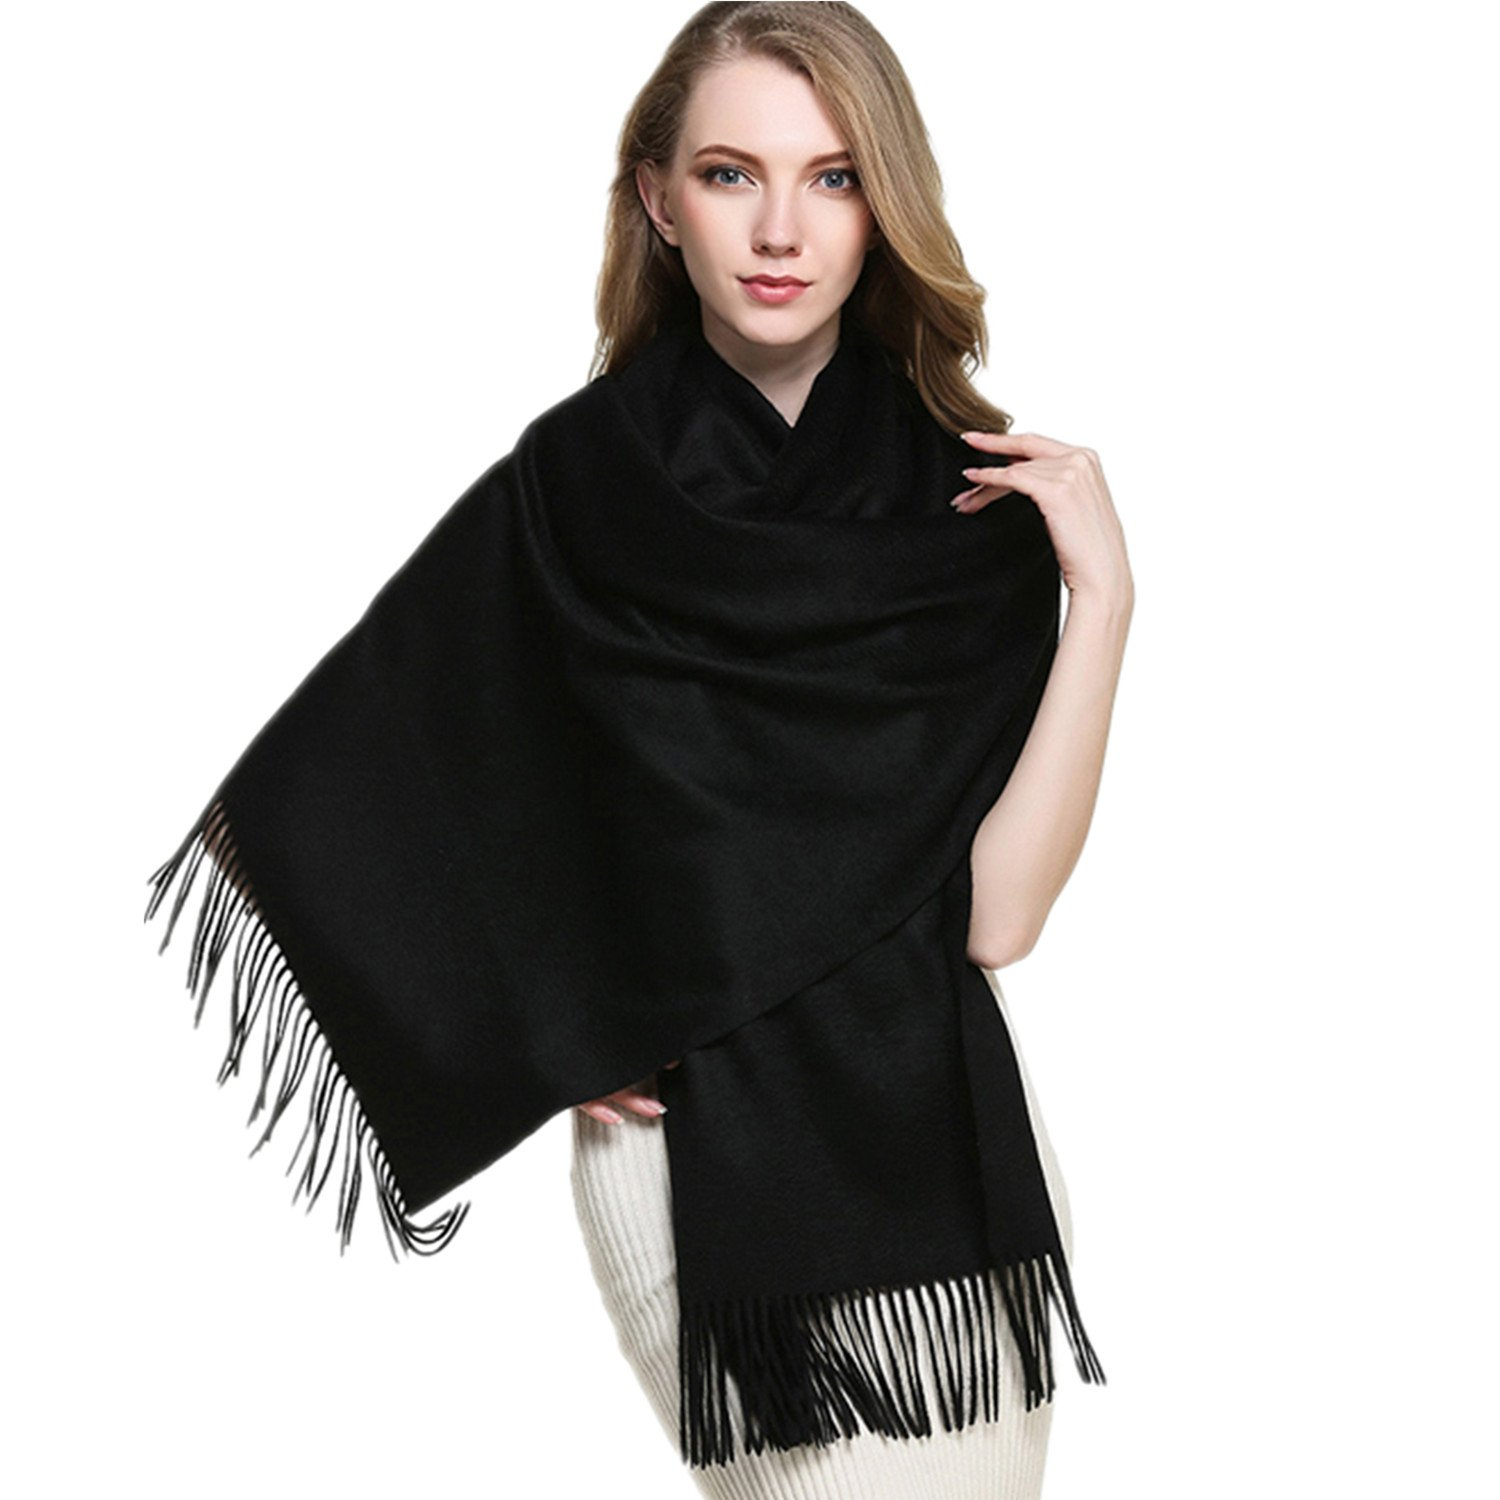 Saferin Extra Large 78'' X 28'' Women and Men Thick Solid Cashmere Pashmina Wrap Shawl Scarf with Gift Box(1.black) by SAFERIN (Image #1)